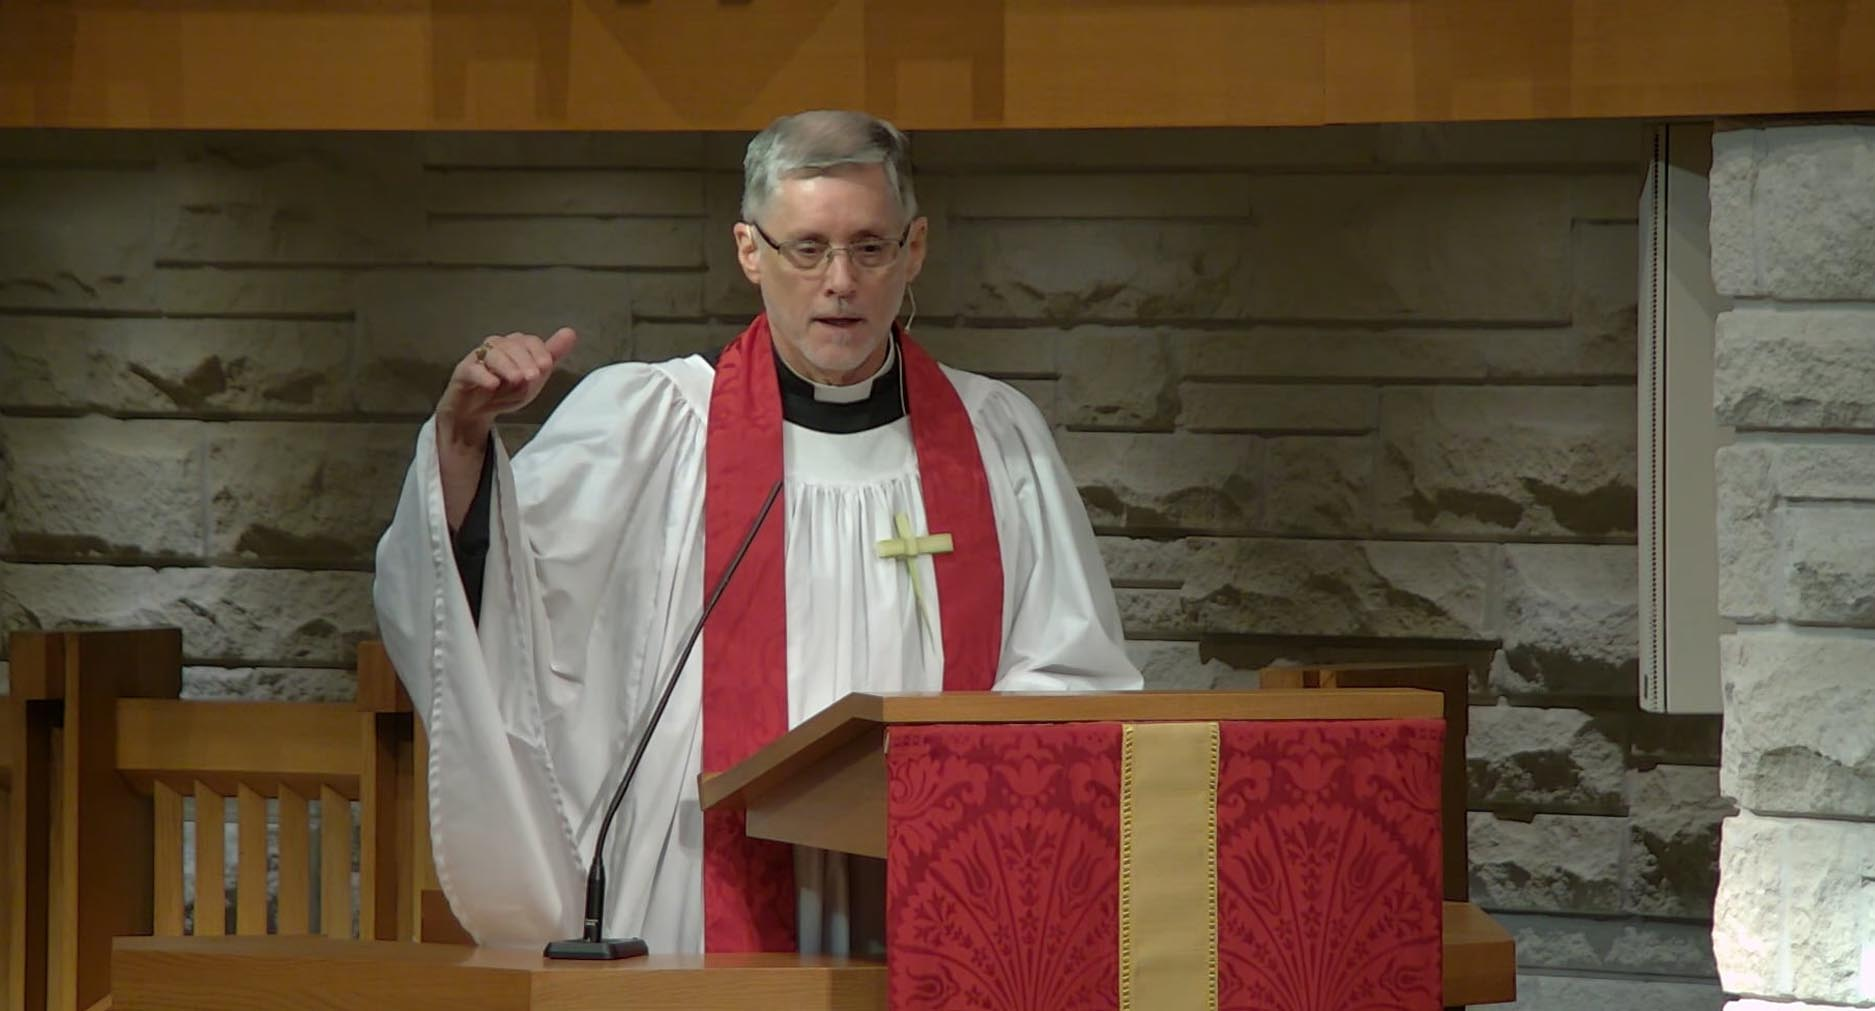 Woodworking with the Savior - Sermon by Bishop Gary Lillibridge